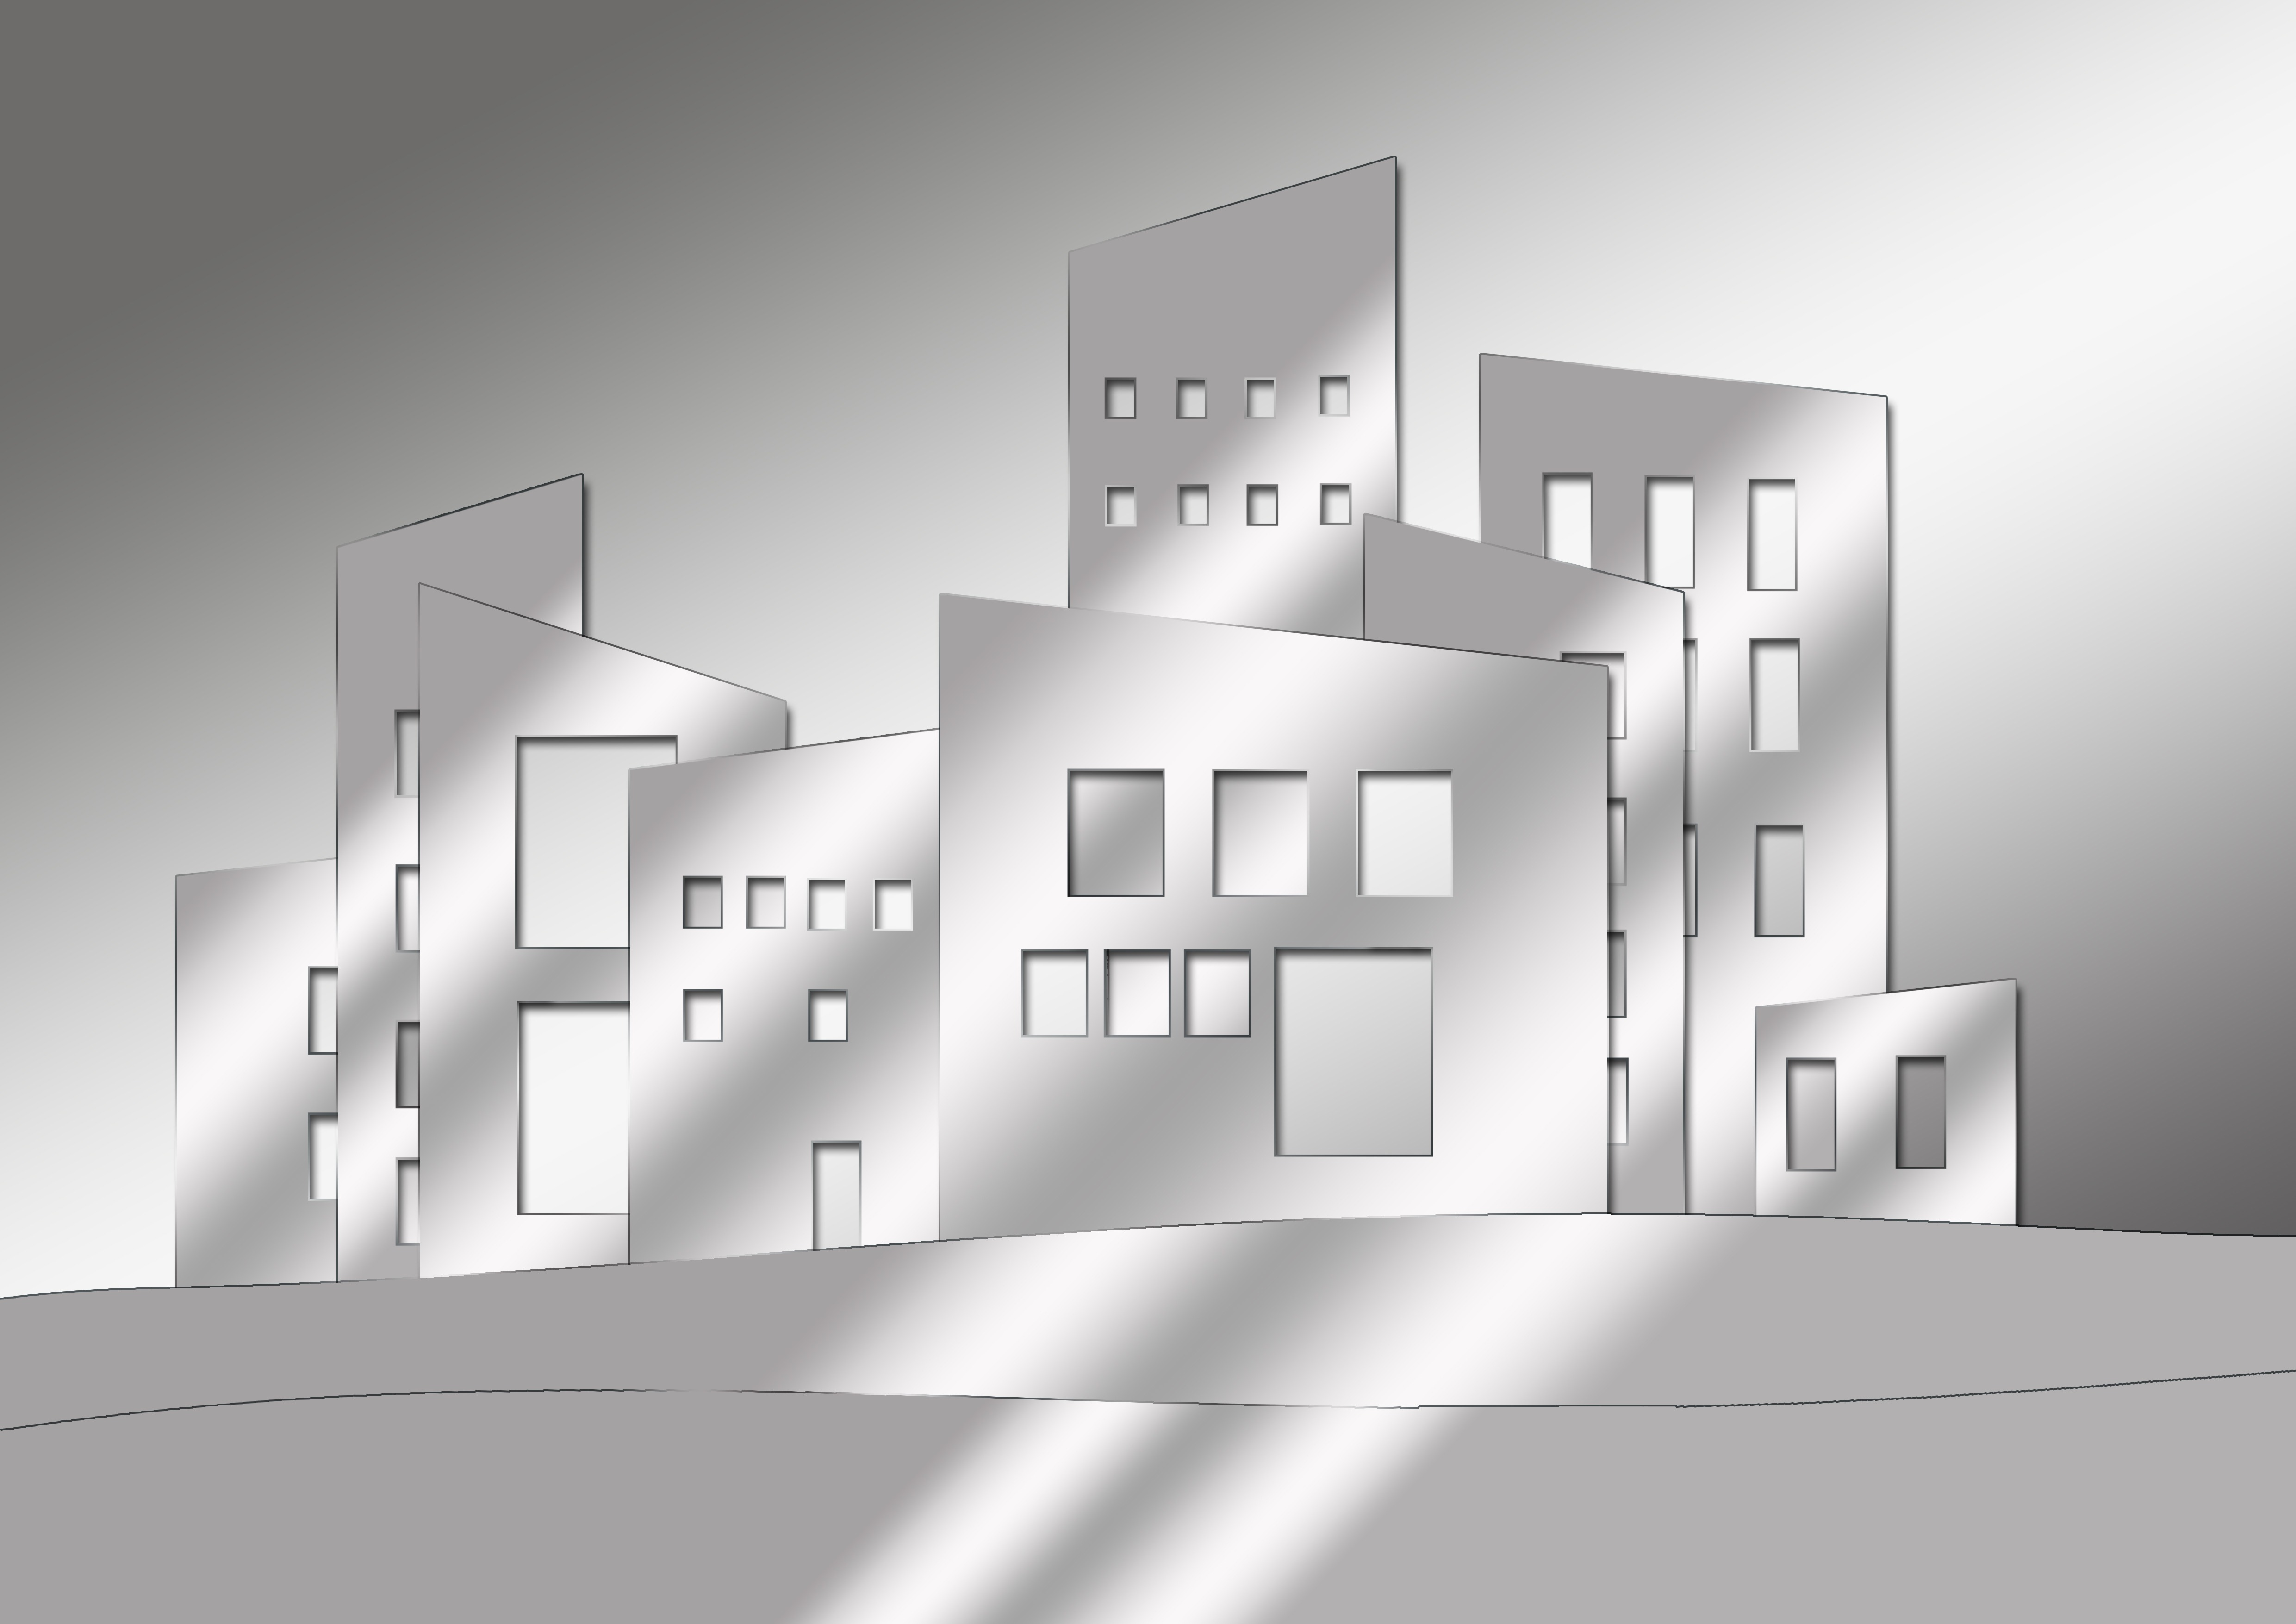 Abstract Buildings In City Illustration Greyscale Free Image